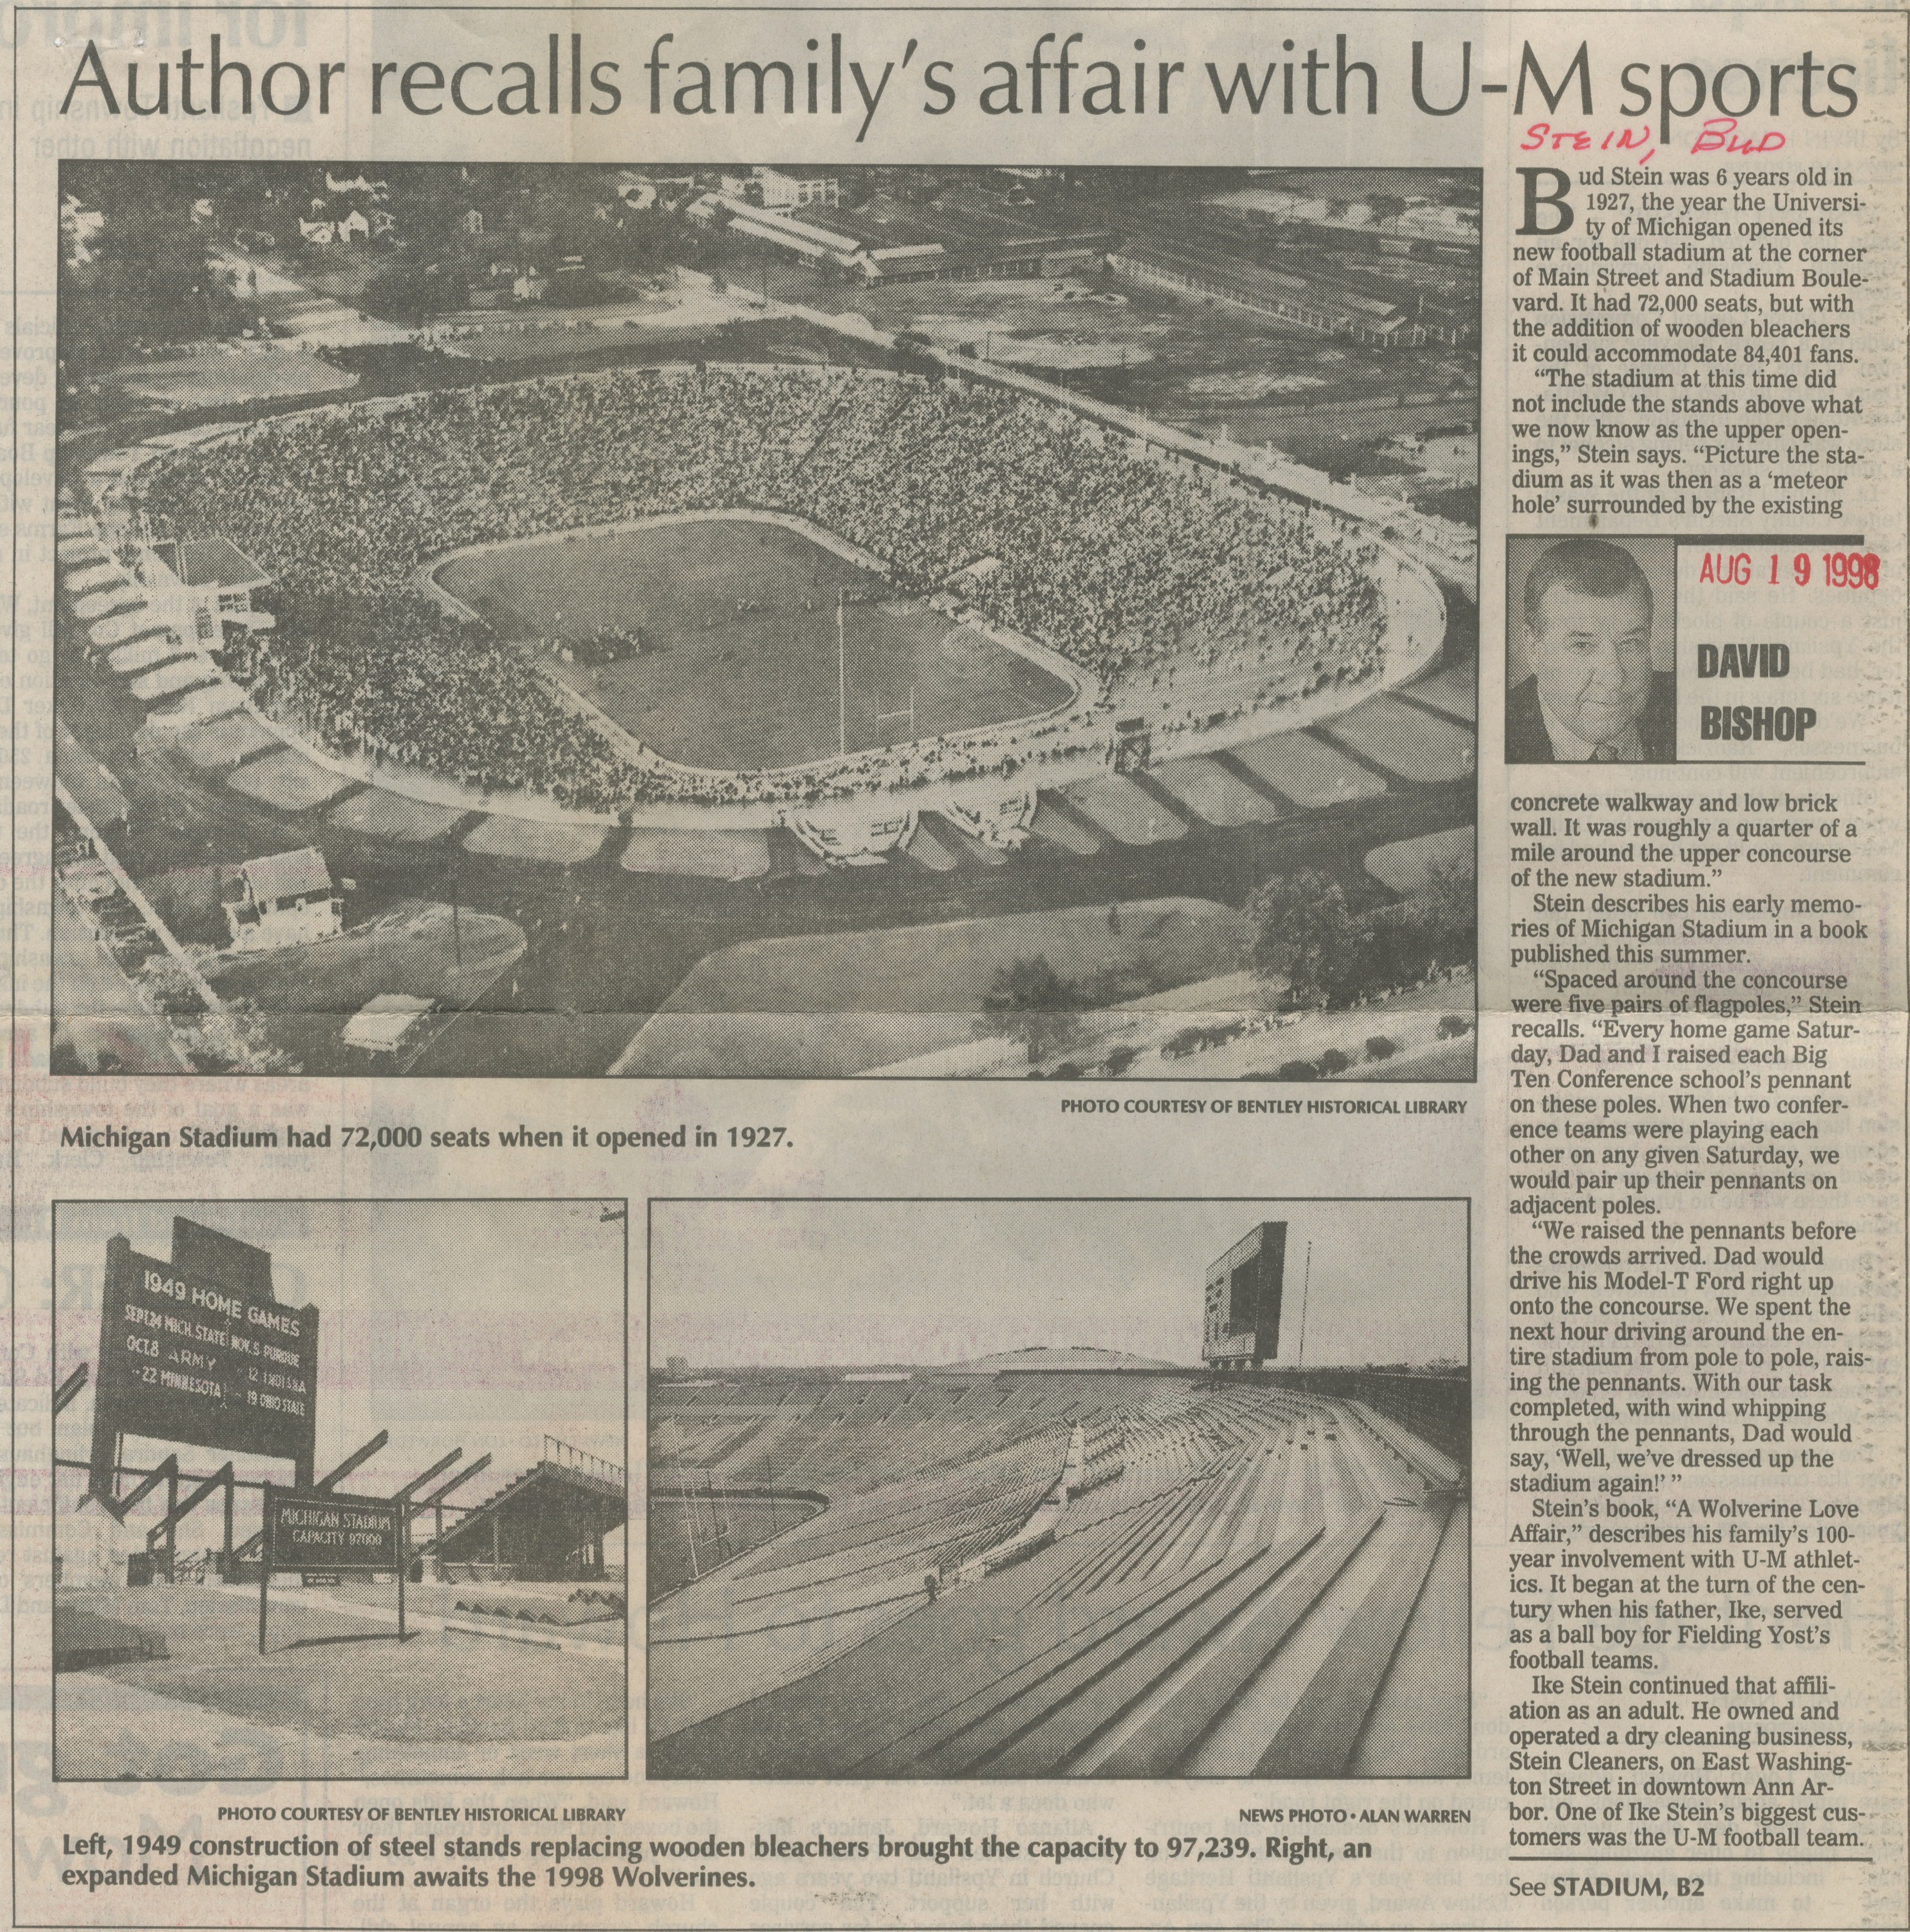 Author Recalls Family's Affair With U-M Sports image